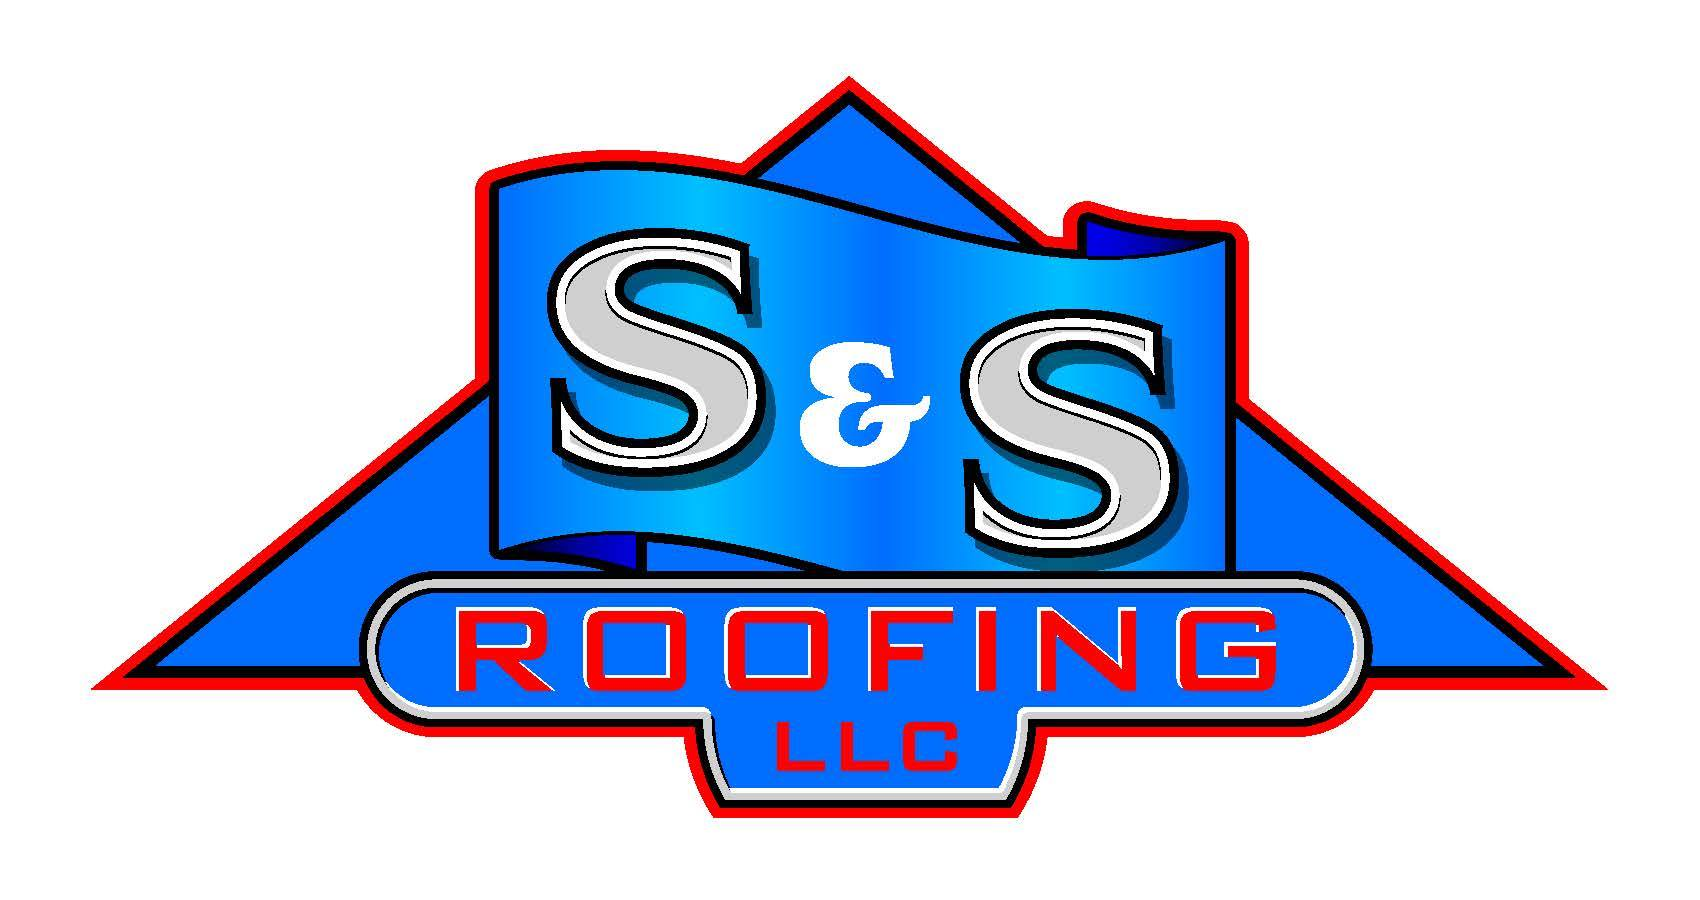 S&S Roofing LLC